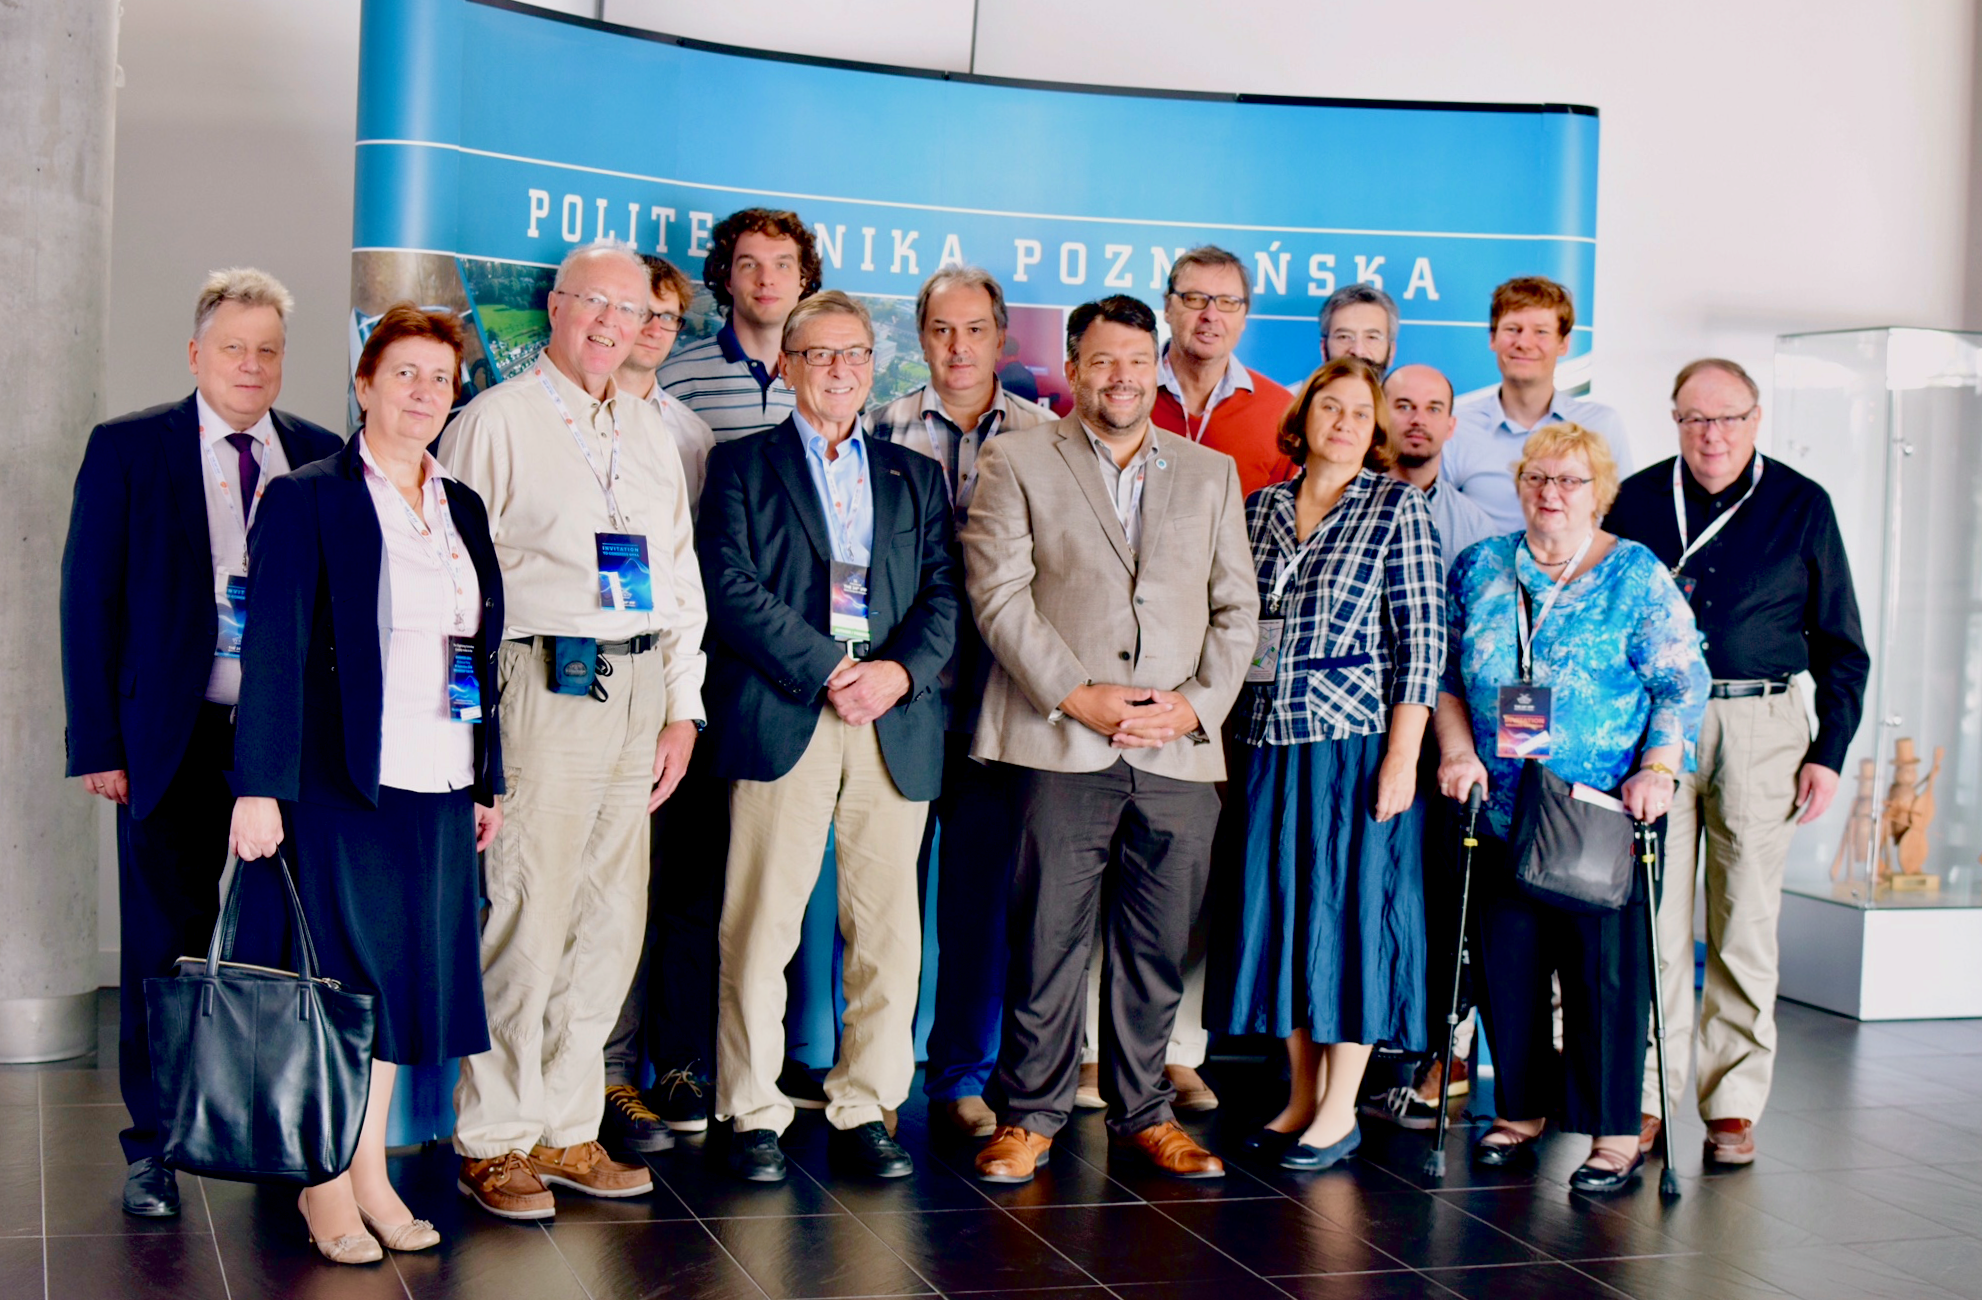 Delegates to the 2018 workshop in Poznań.